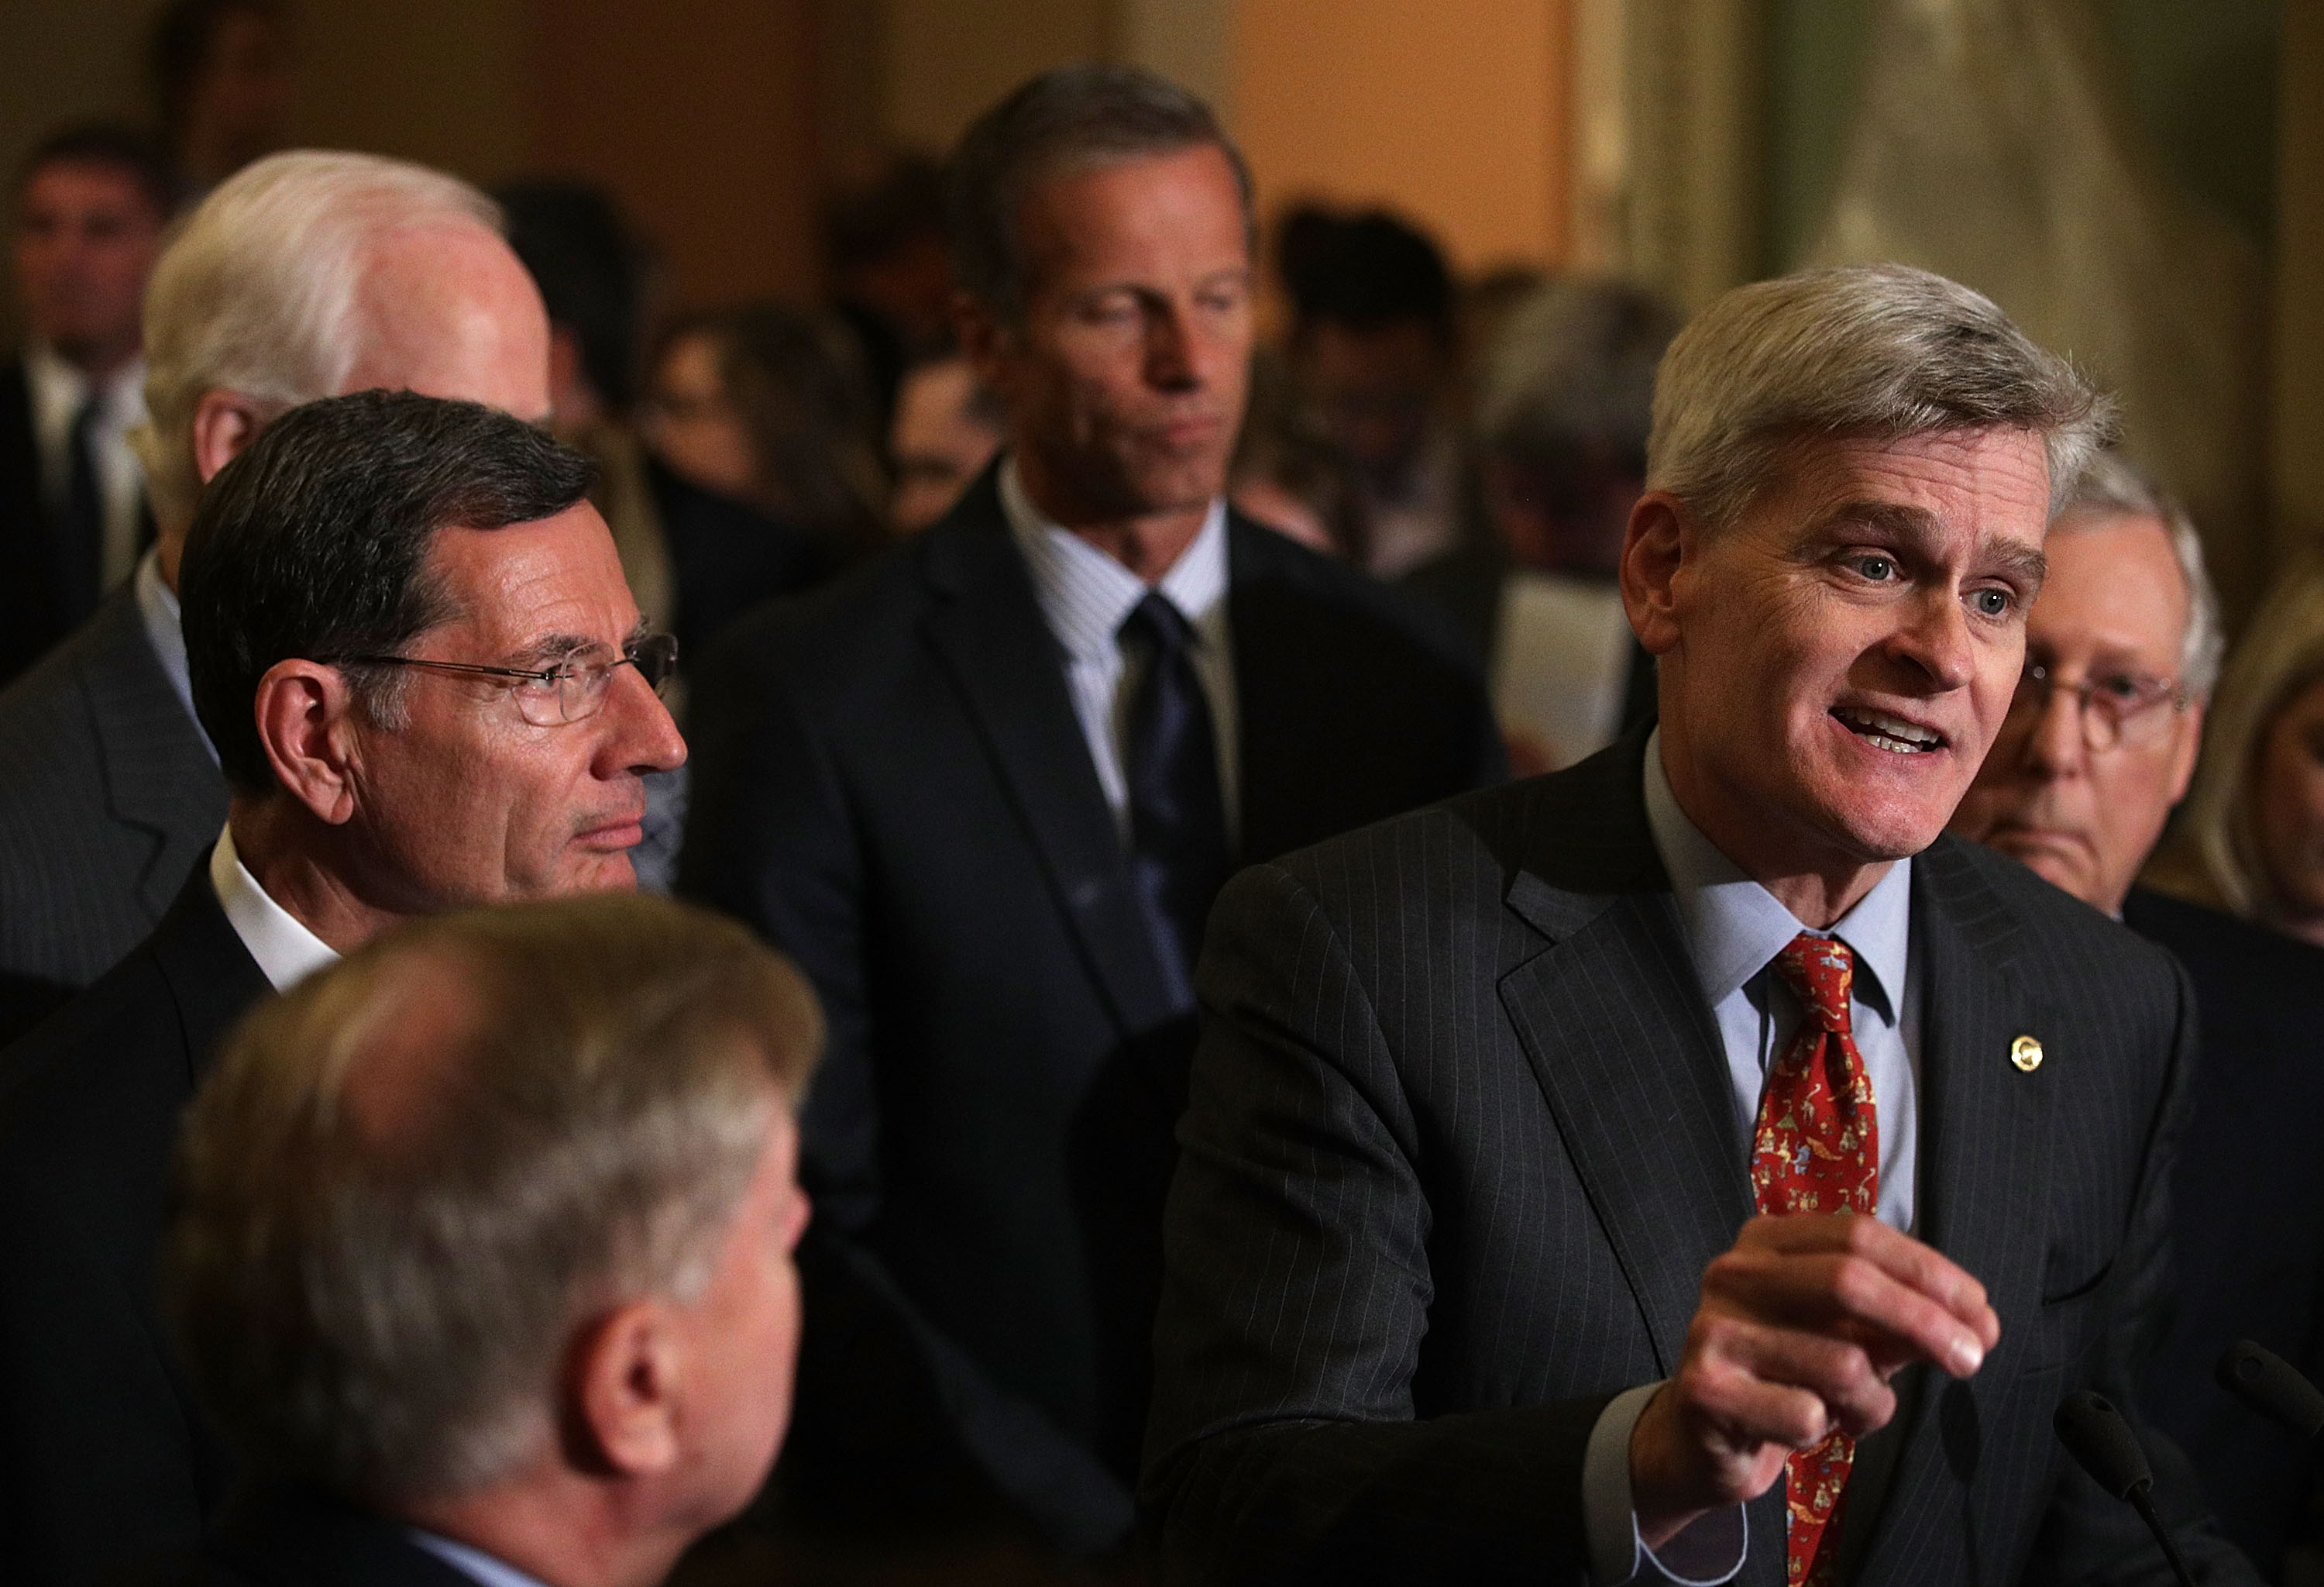 I've covered the GOP repeal plans since day one. Graham-Cassidy is the most radical.